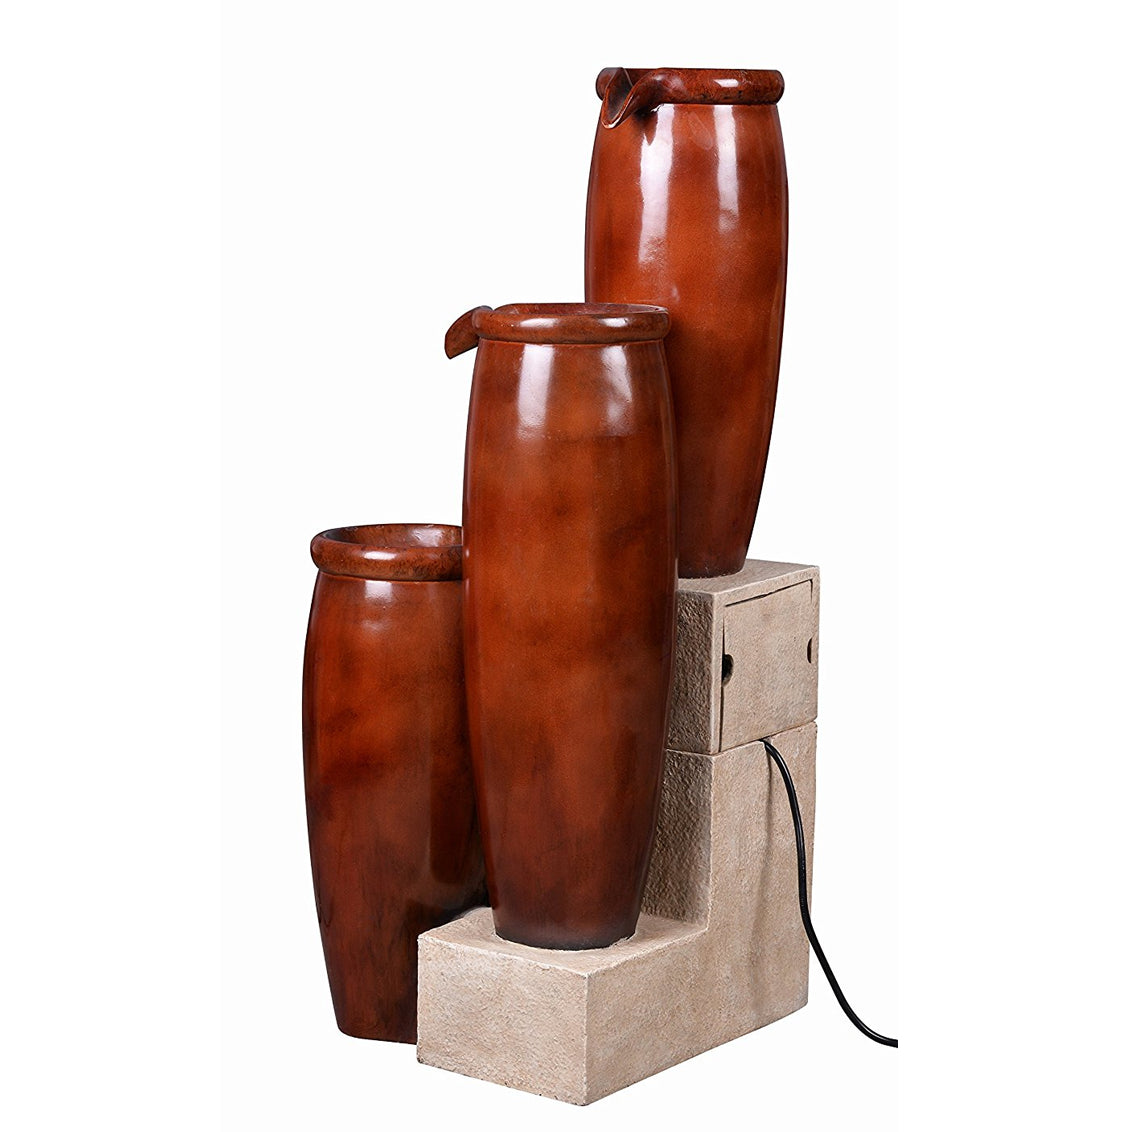 Vessel Indoor/Outdoor Floor Fountain - Soothing Walls